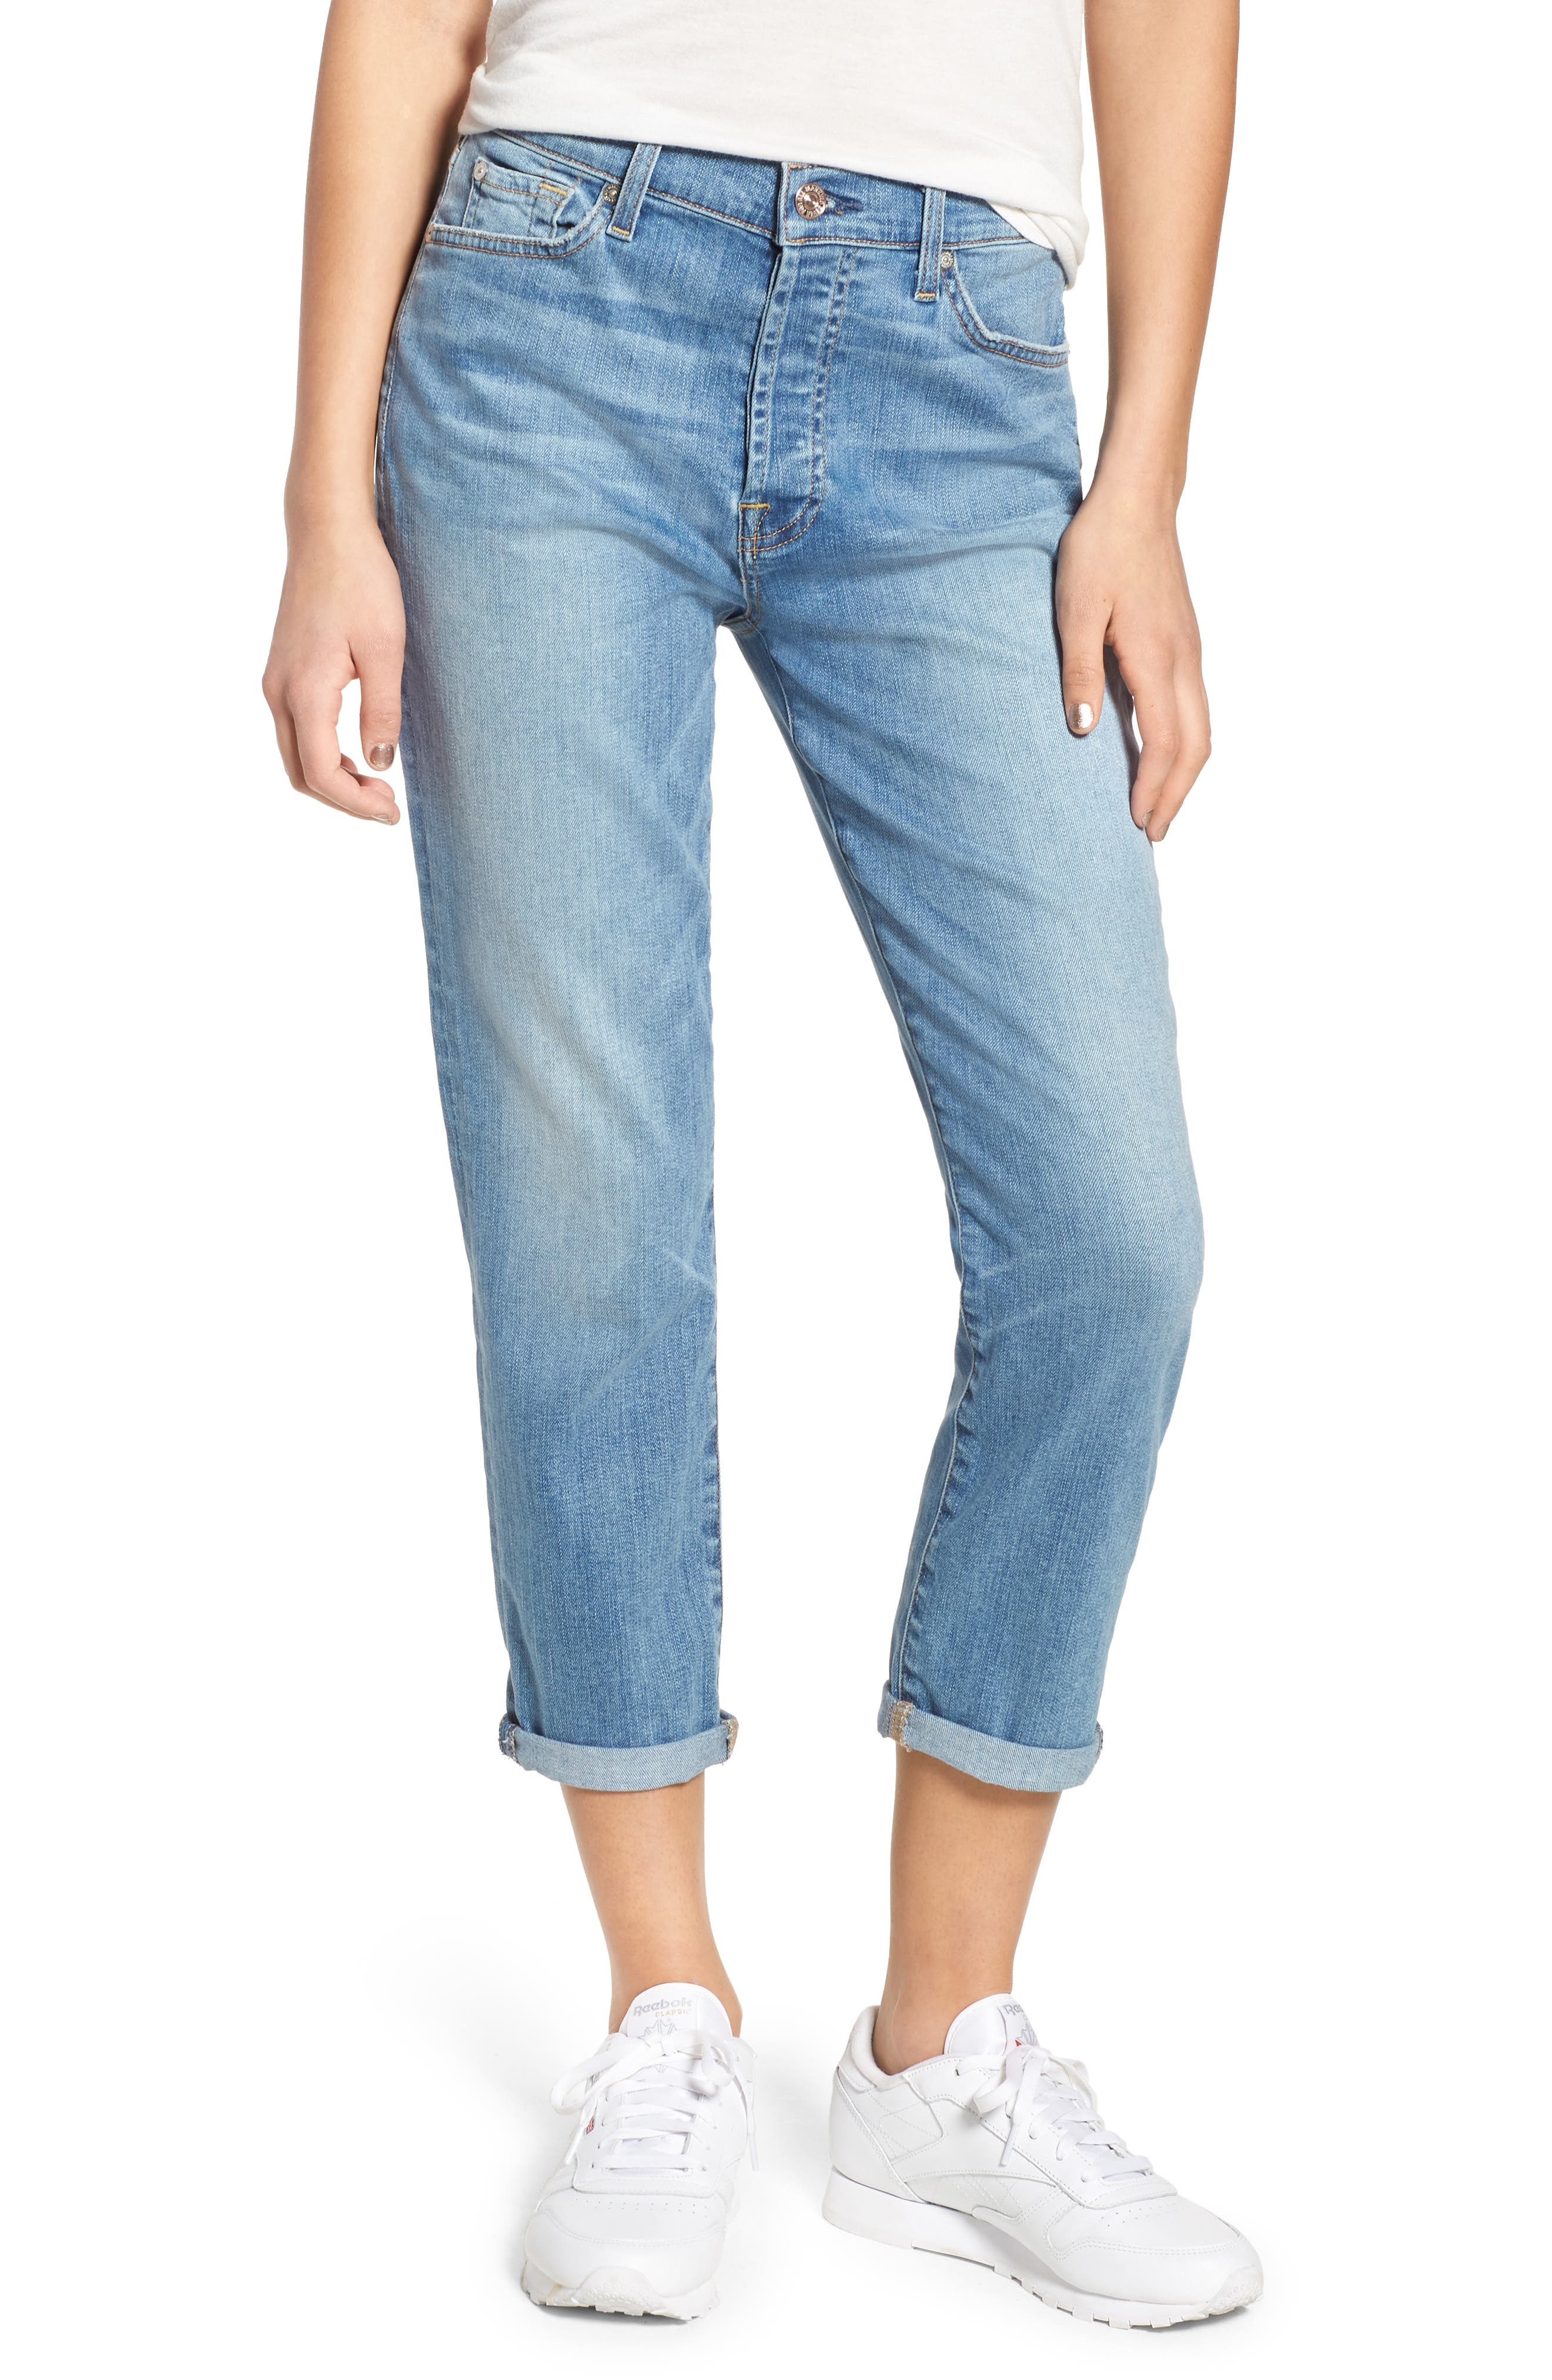 Alternate Image 1 Selected - 7 For All Mankind® Josefina High Waist Boyfriend Jeans (Heritage Valley 4)